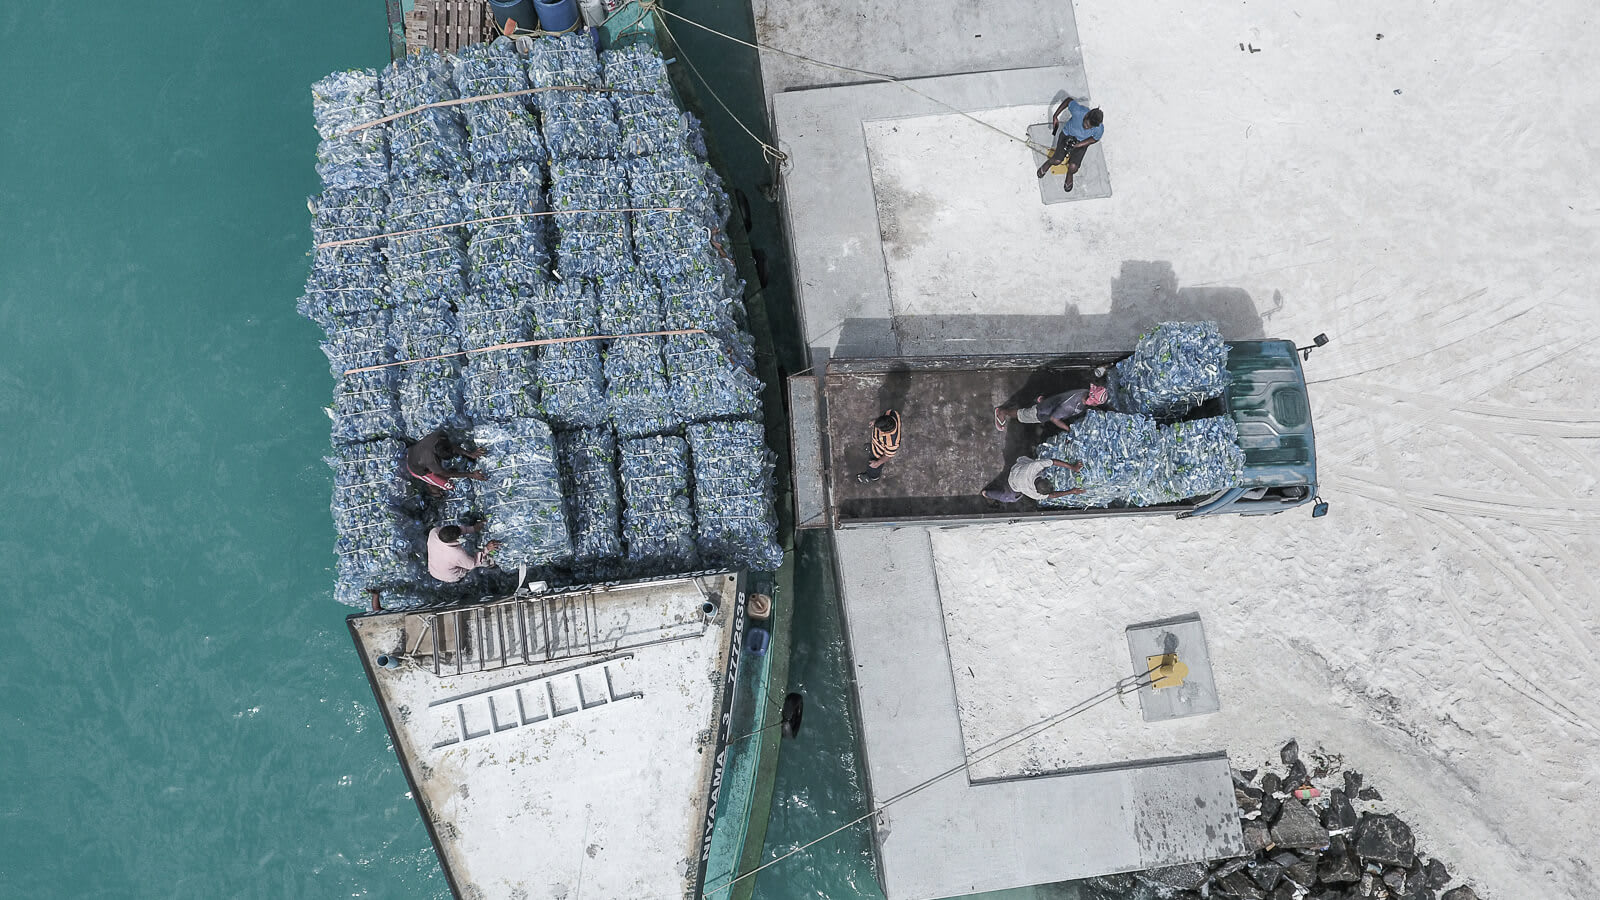 parley-xcat-ss21-editorial-problem-of-ocean-plastic-image-02